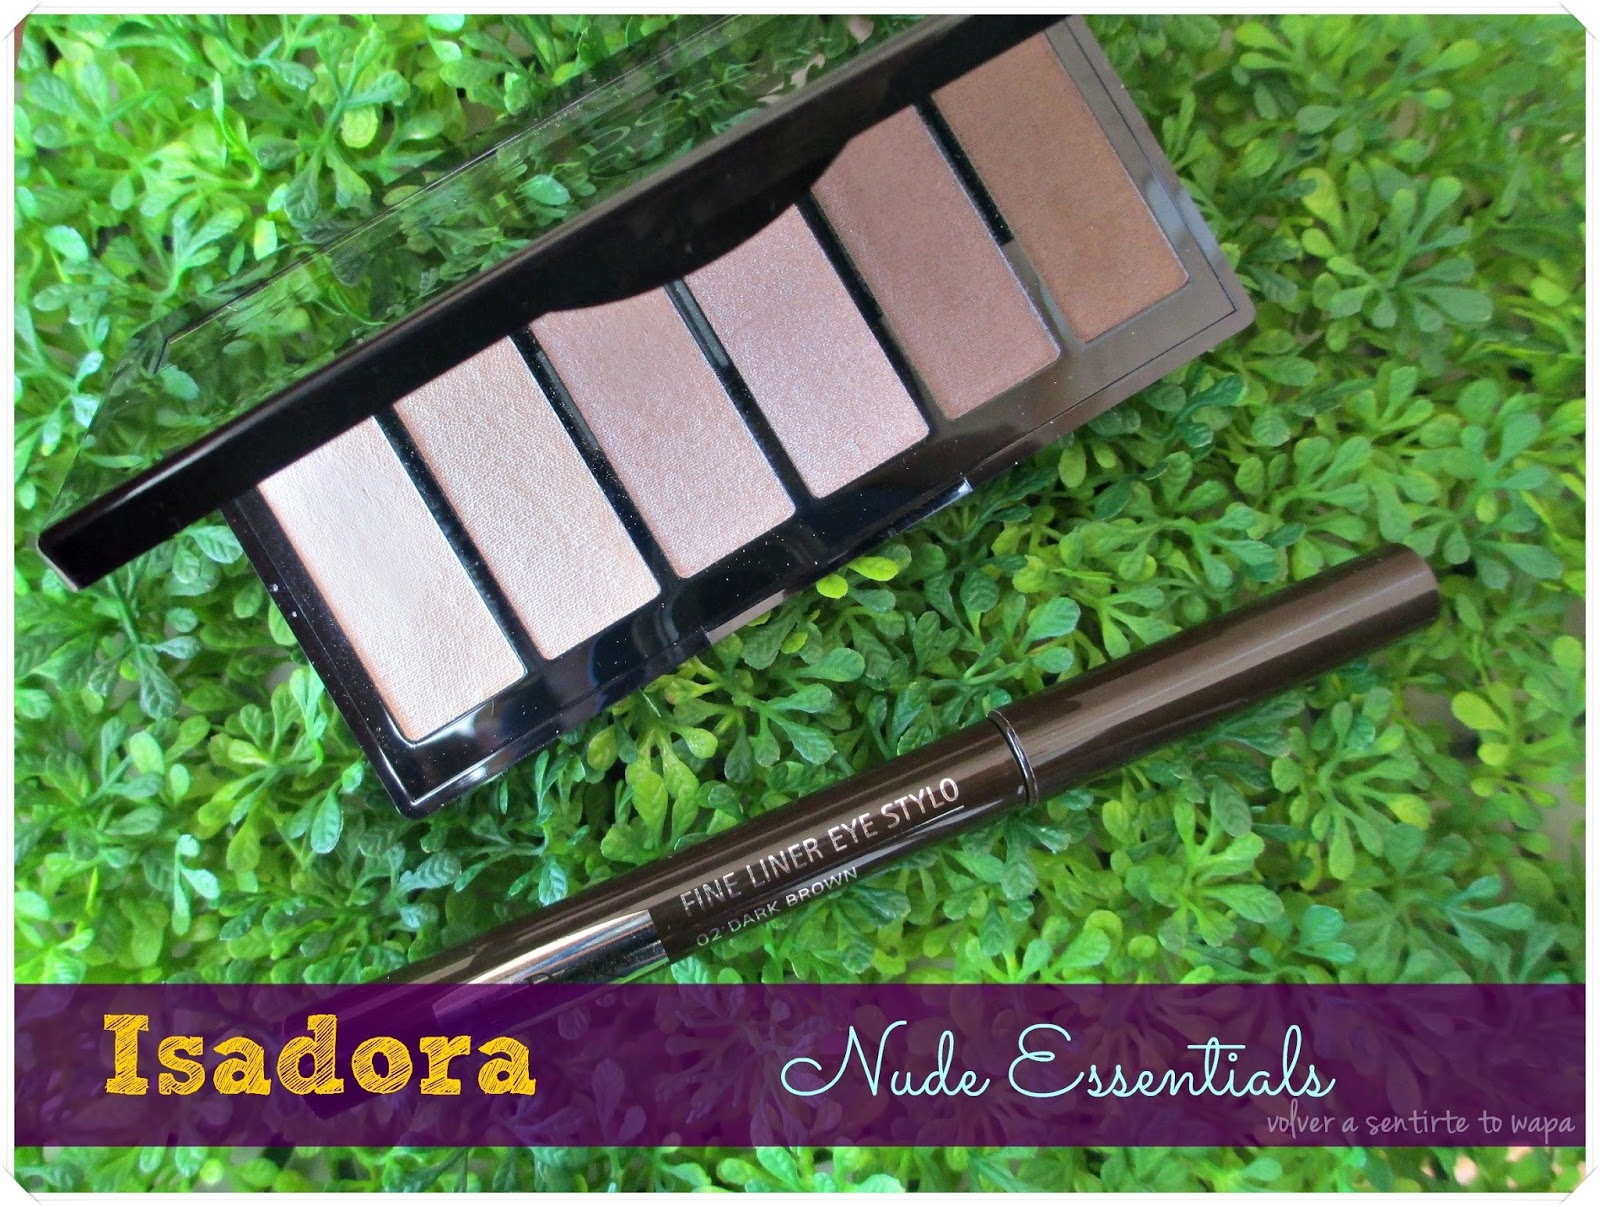 Nude Essentials, la paleta básica de ISADORA {Review + Swatches + Maquillaje}